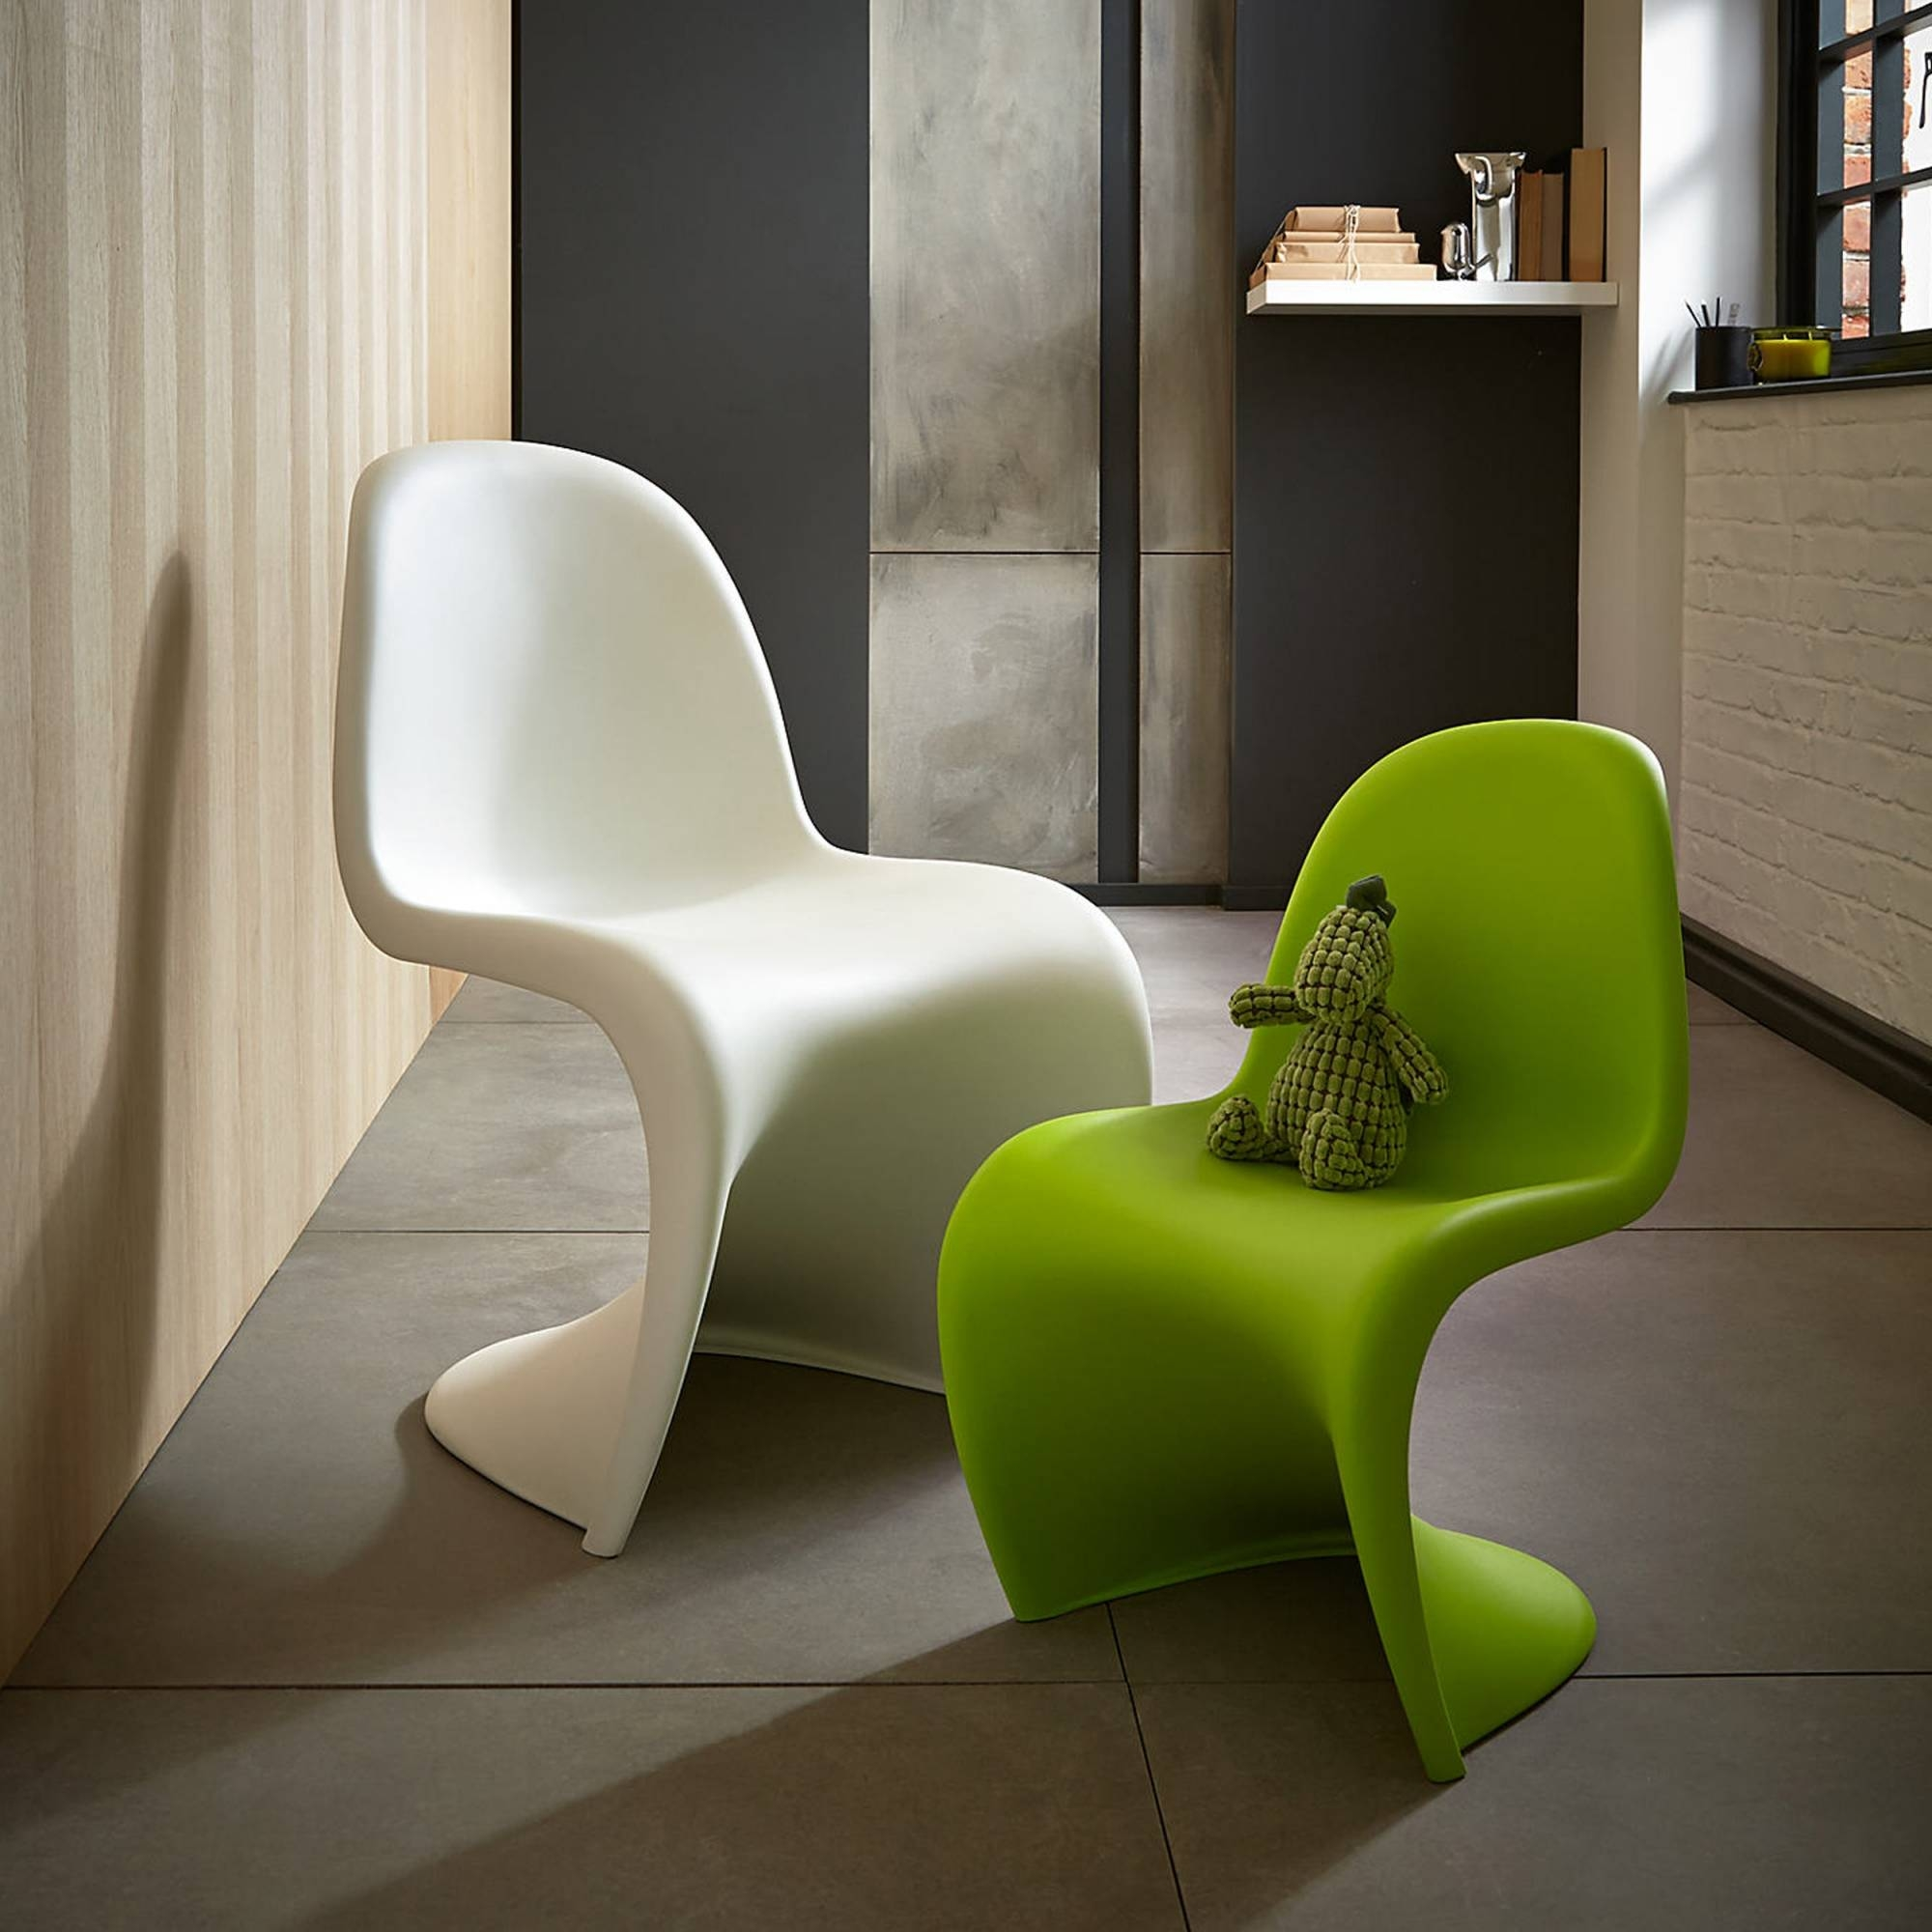 Delightful The Panton Chair Is A Designer Chair For Children By